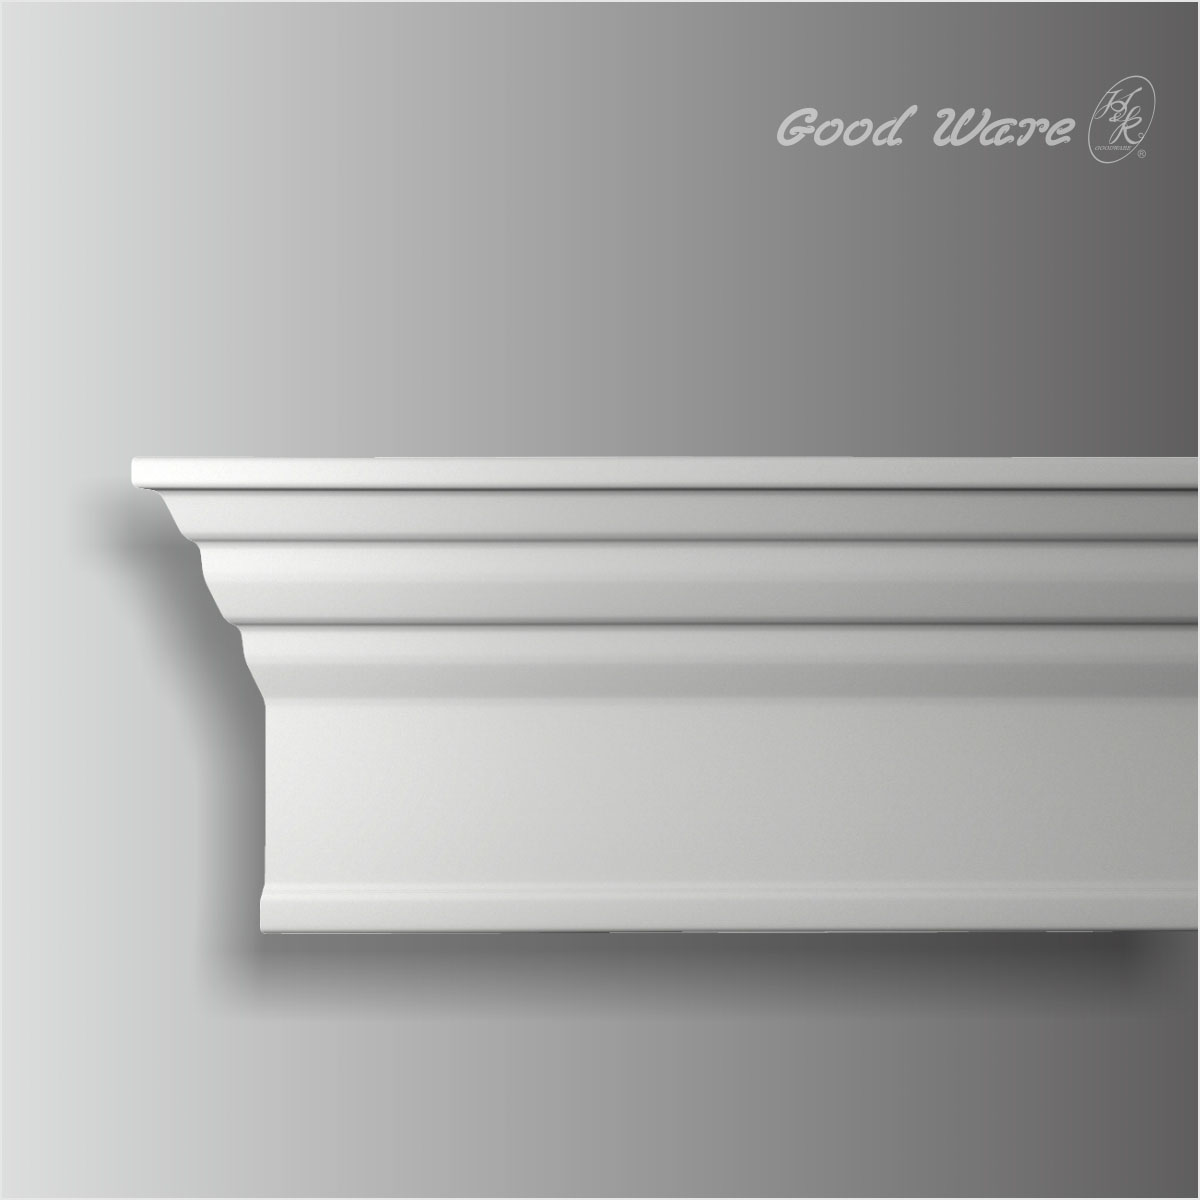 Polyurethane plain crown moulding for cabinets